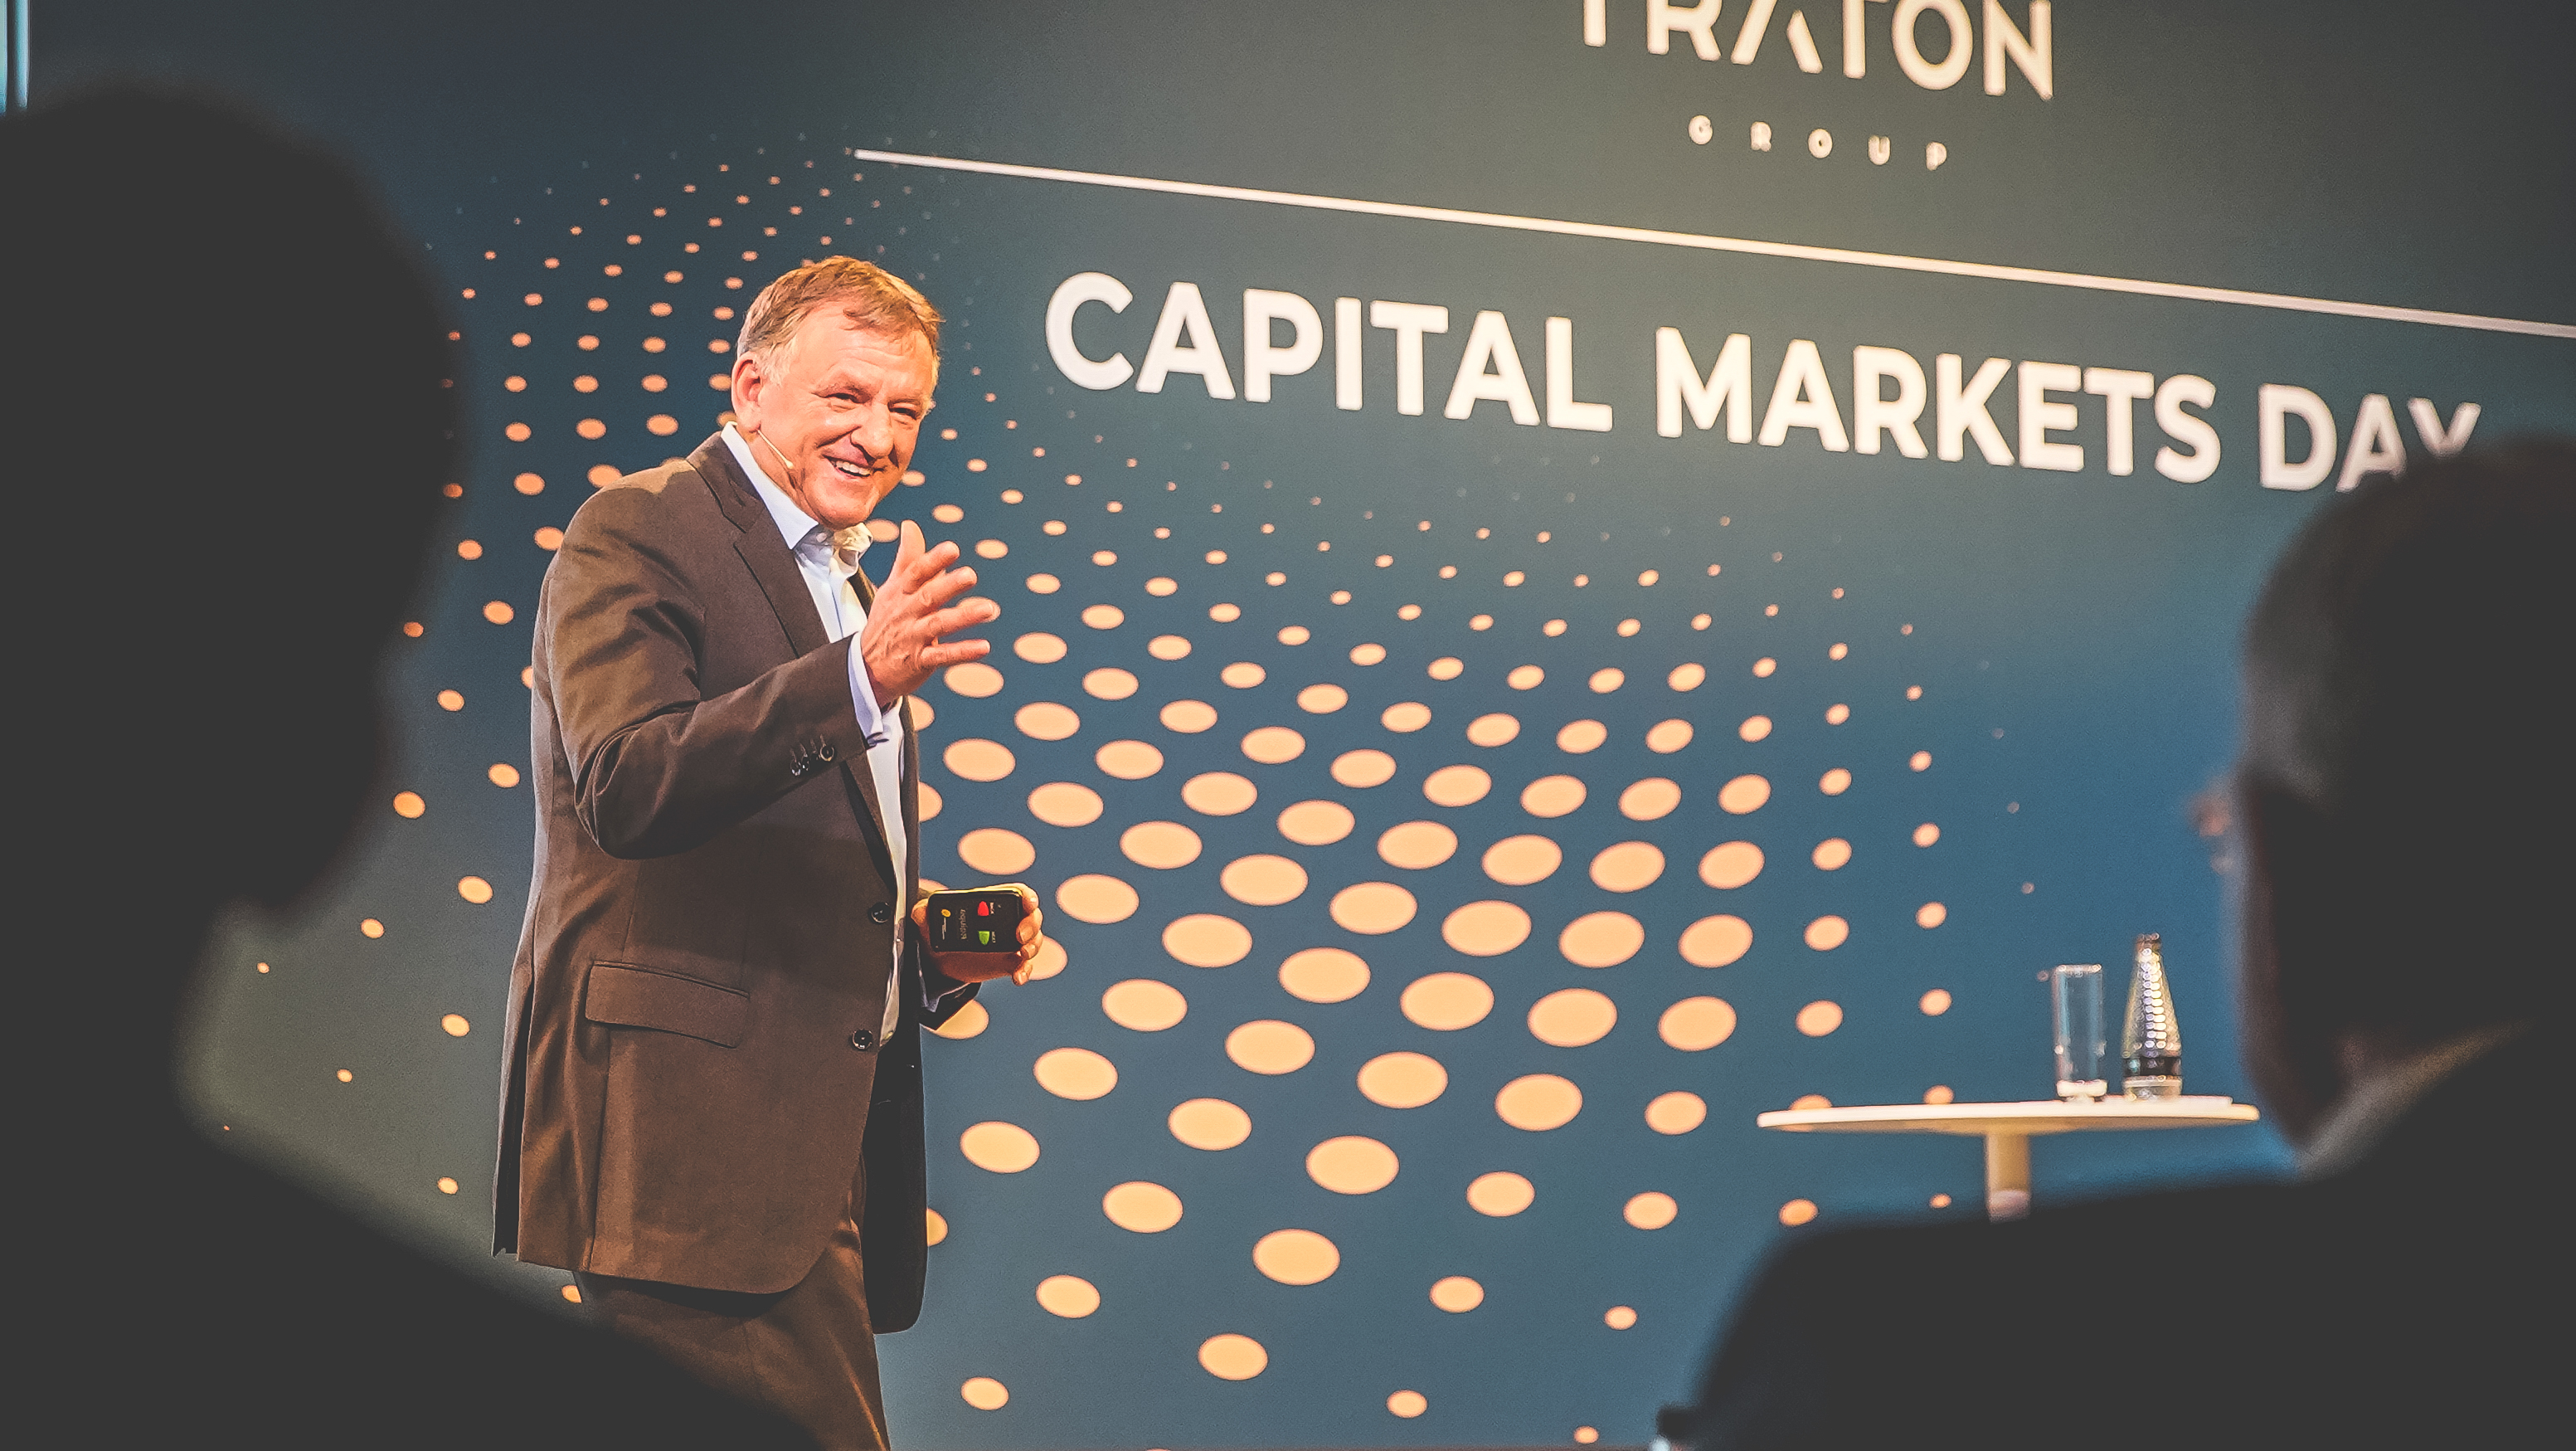 Andreas Renschler at the Capital Markets Day in London.